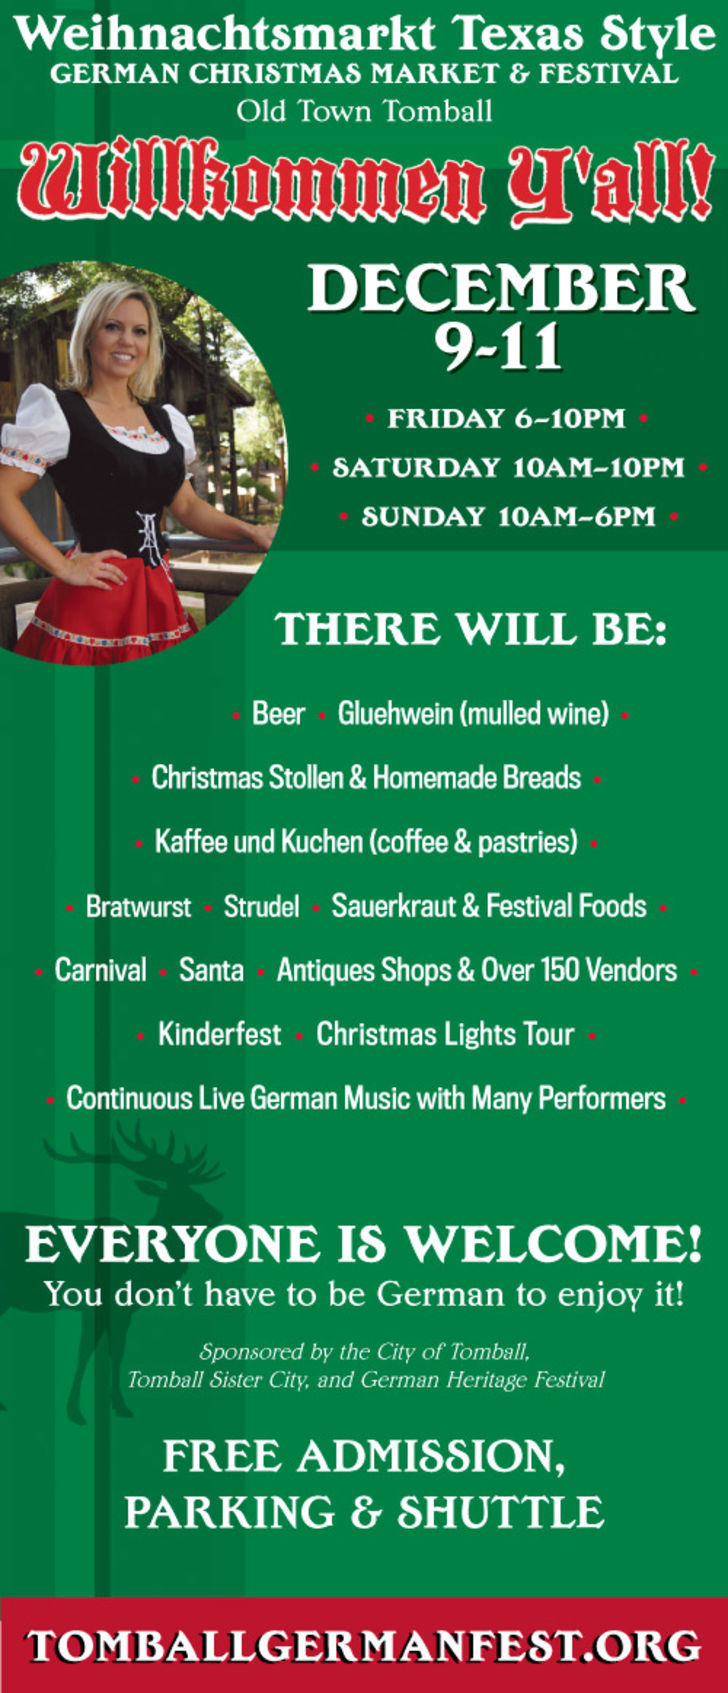 Tomball German Christmas Market Festival